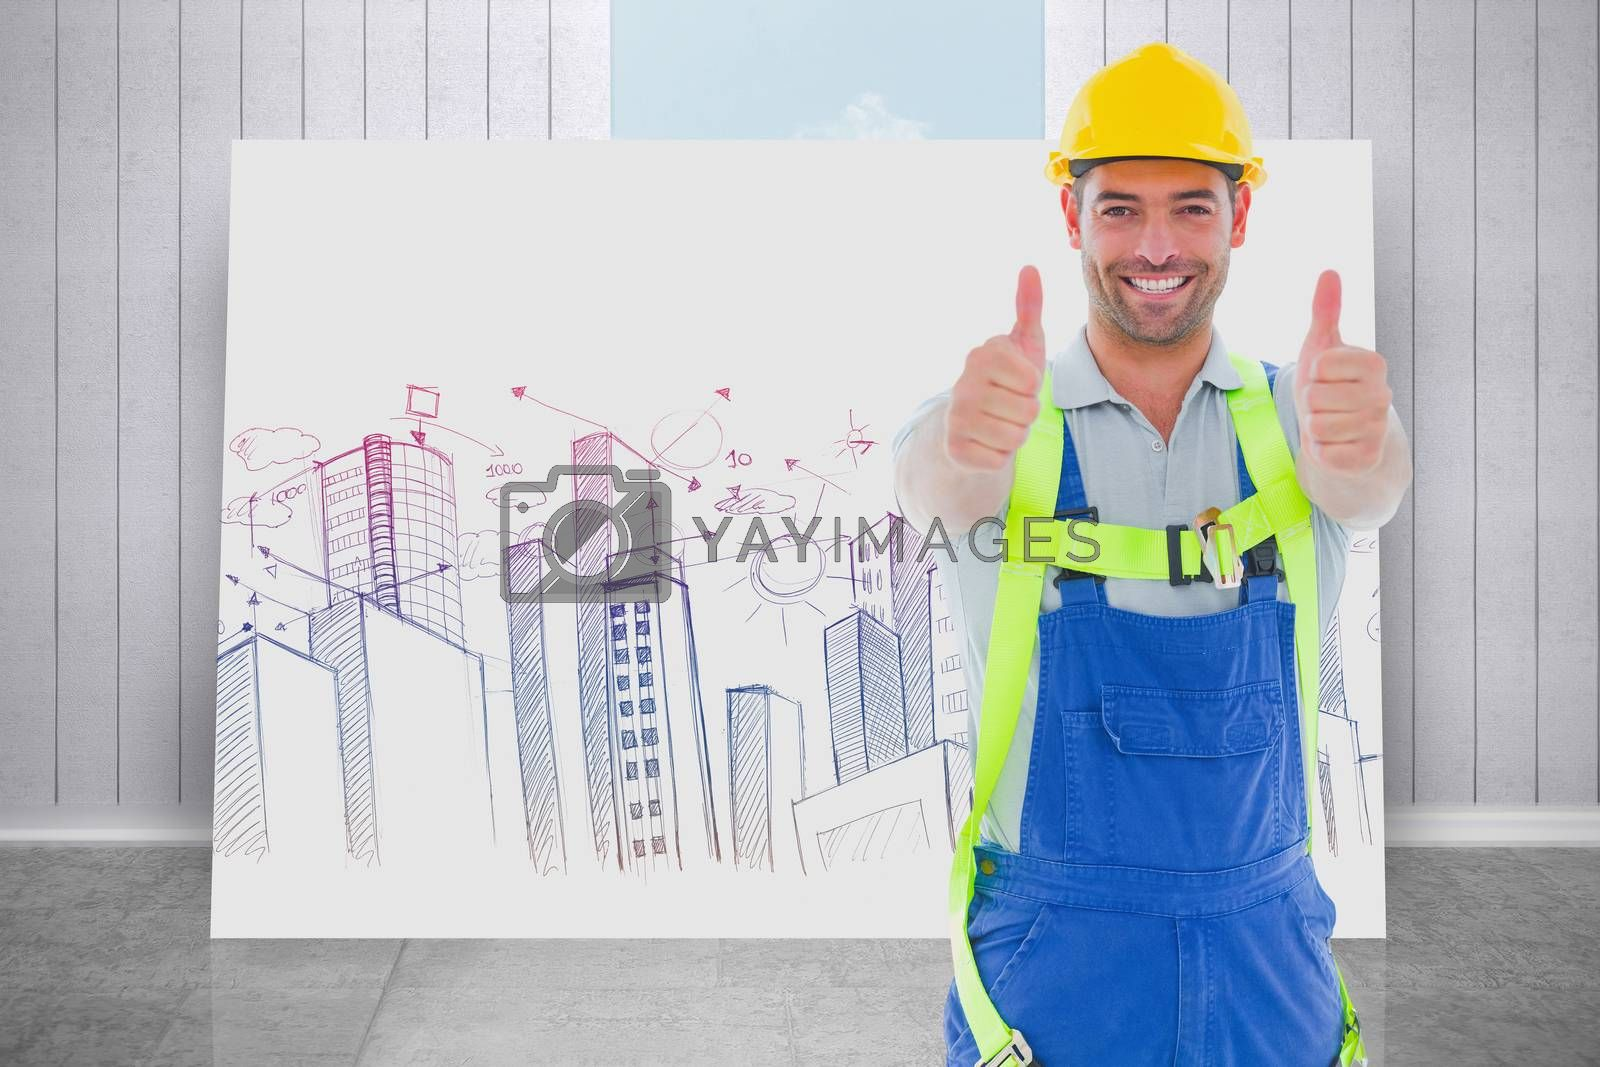 Builder in safety gear against composite image of white card